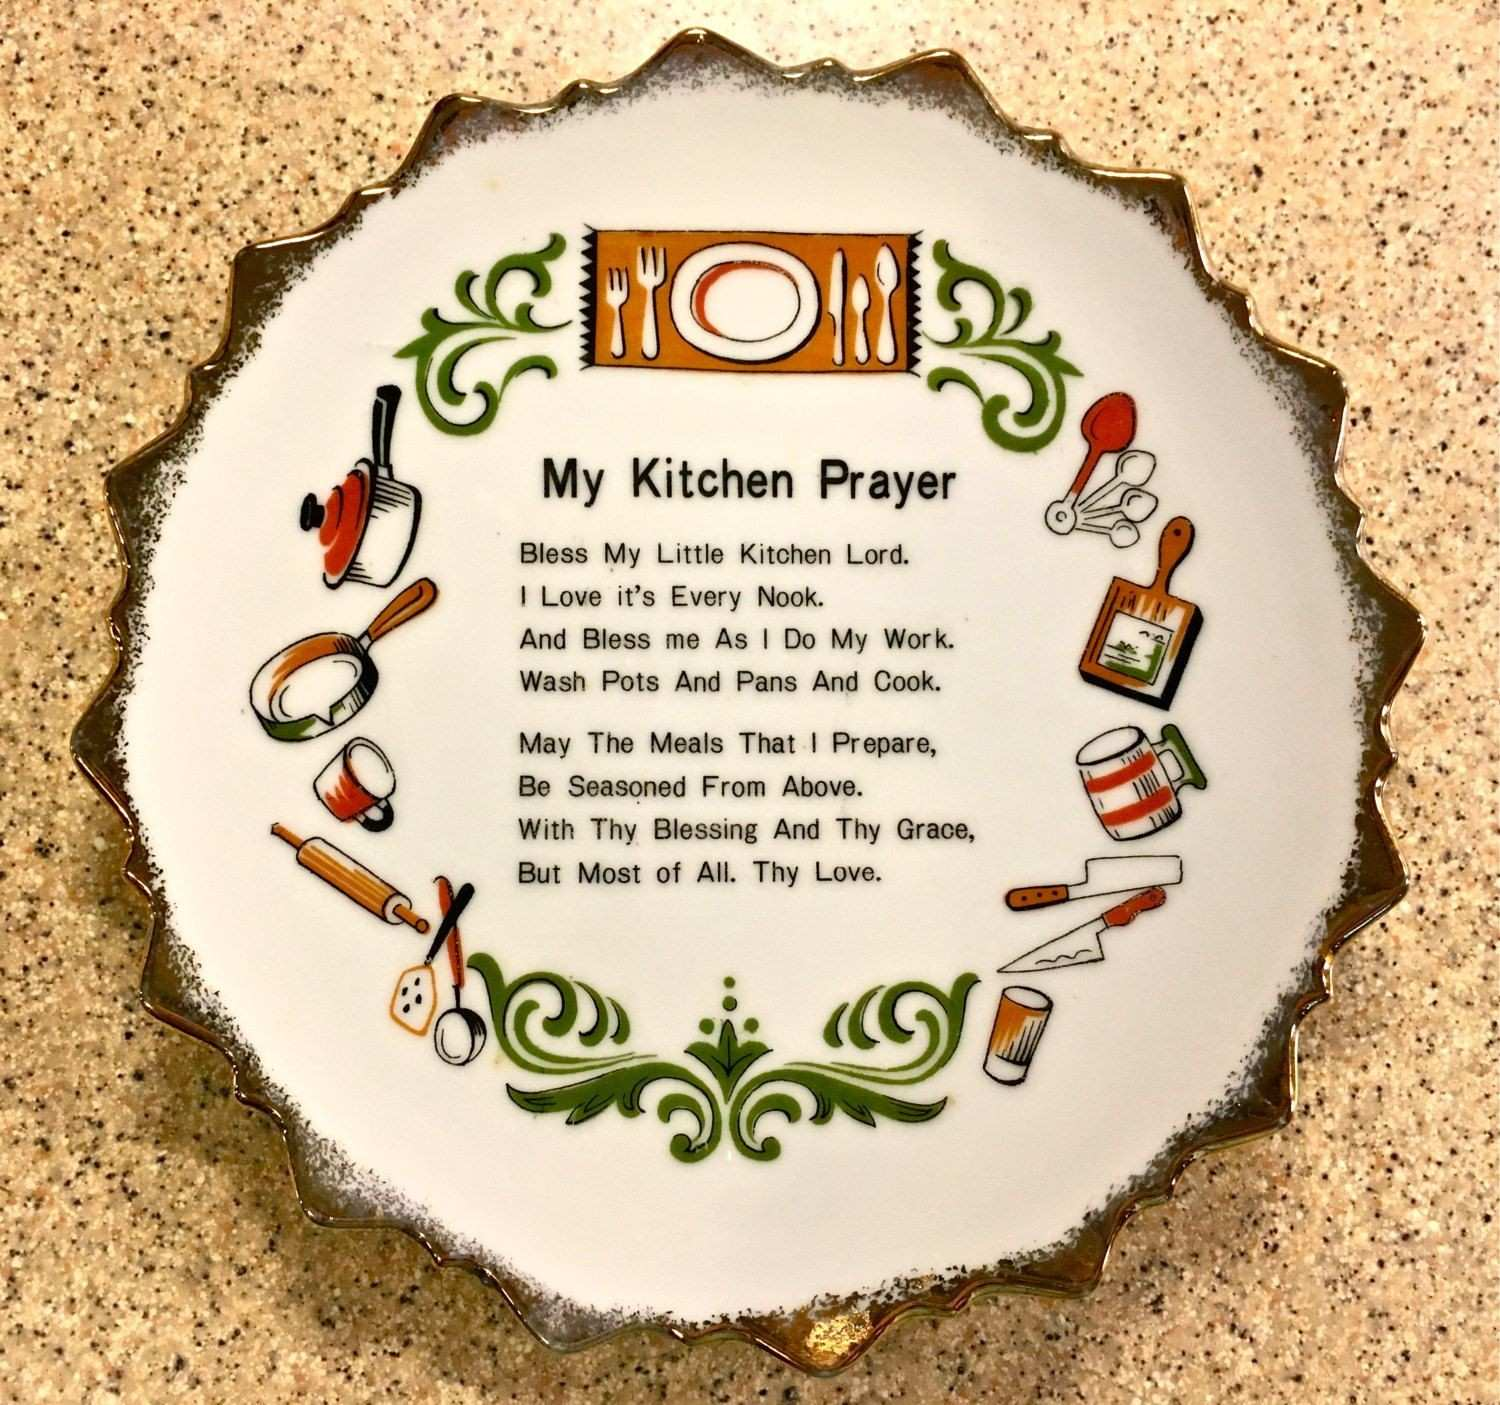 Wall Hanging Decor Lovely Sweet Vintage Kitchen Prayer Plate Home Decor Wall Hanging by